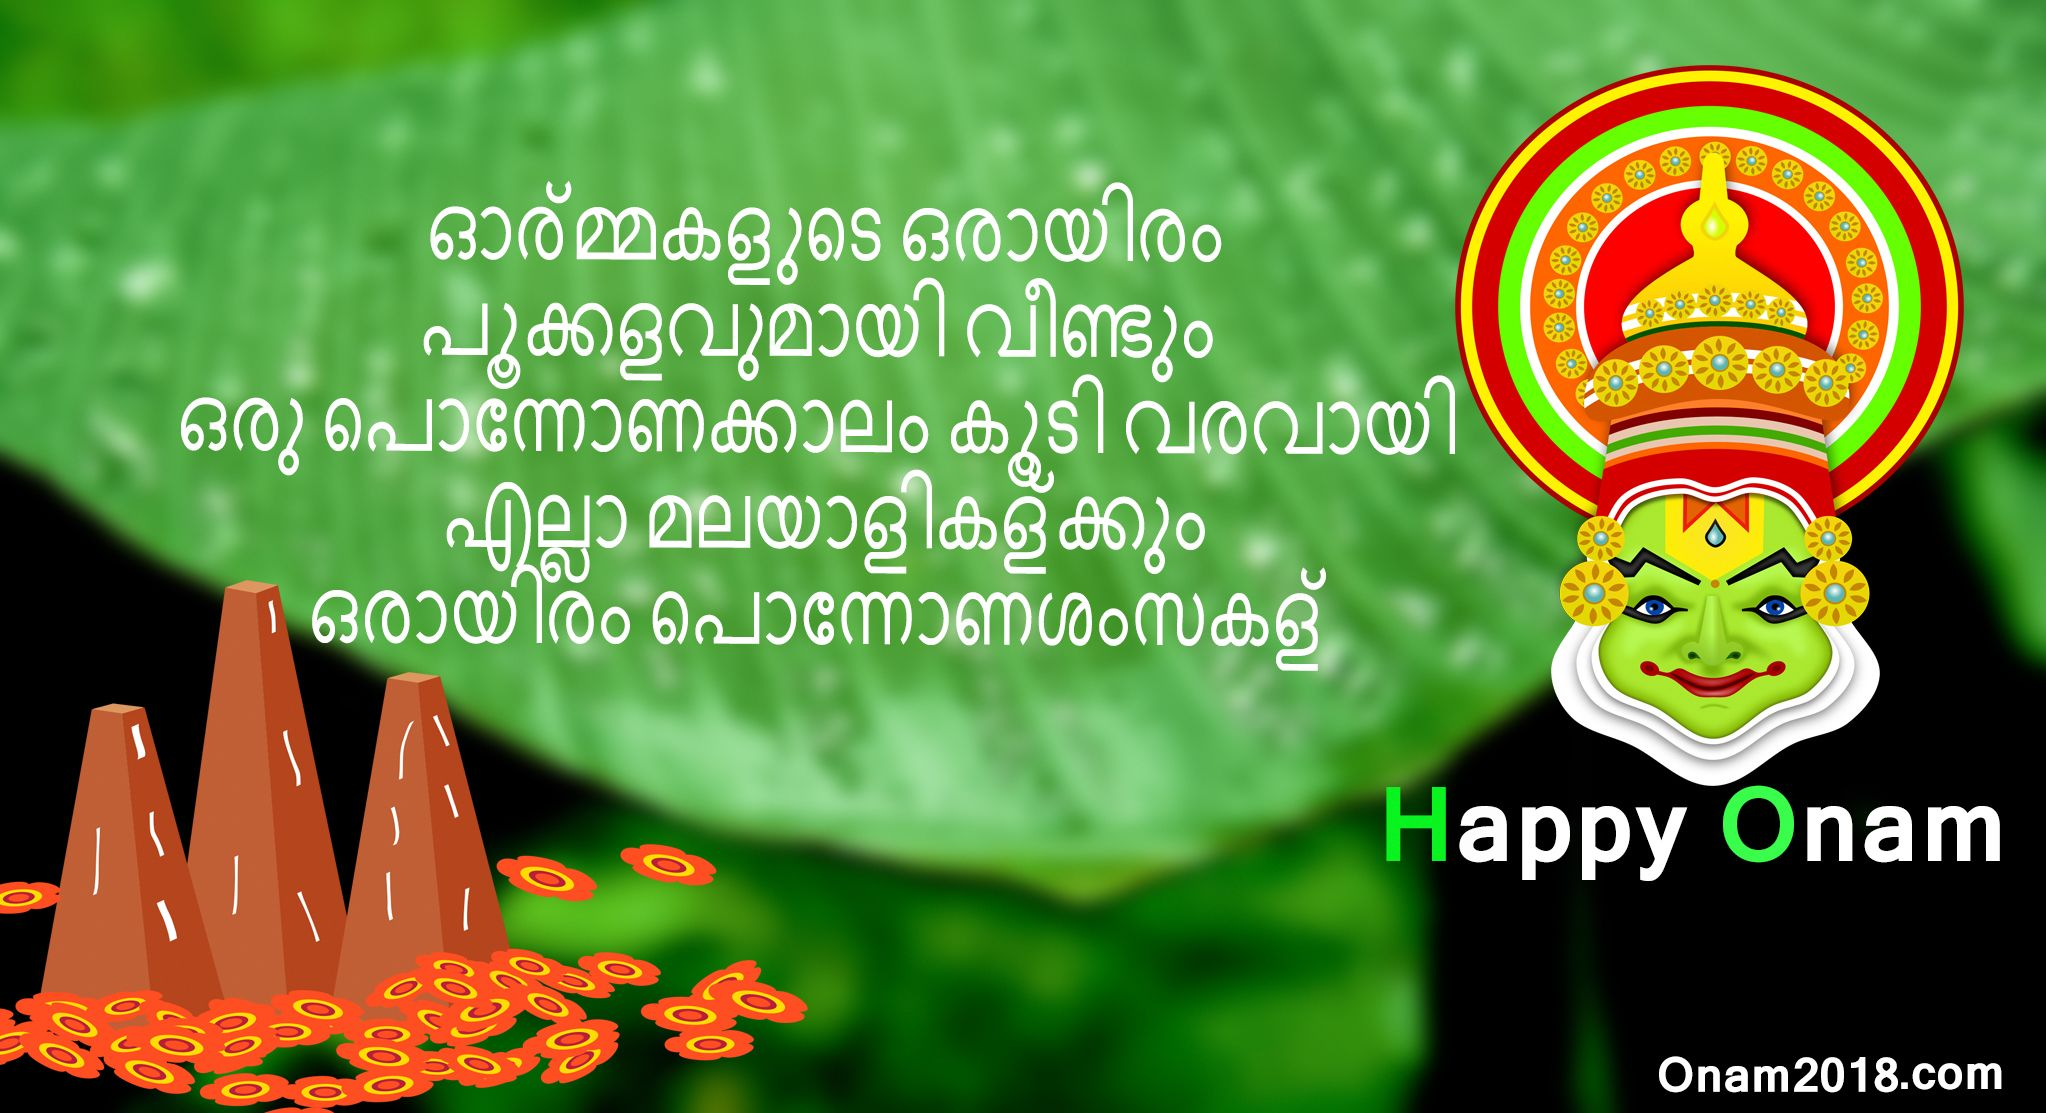 Onam Wishes Malayalam Happy Onam Wishes In Malayalam Font Onam